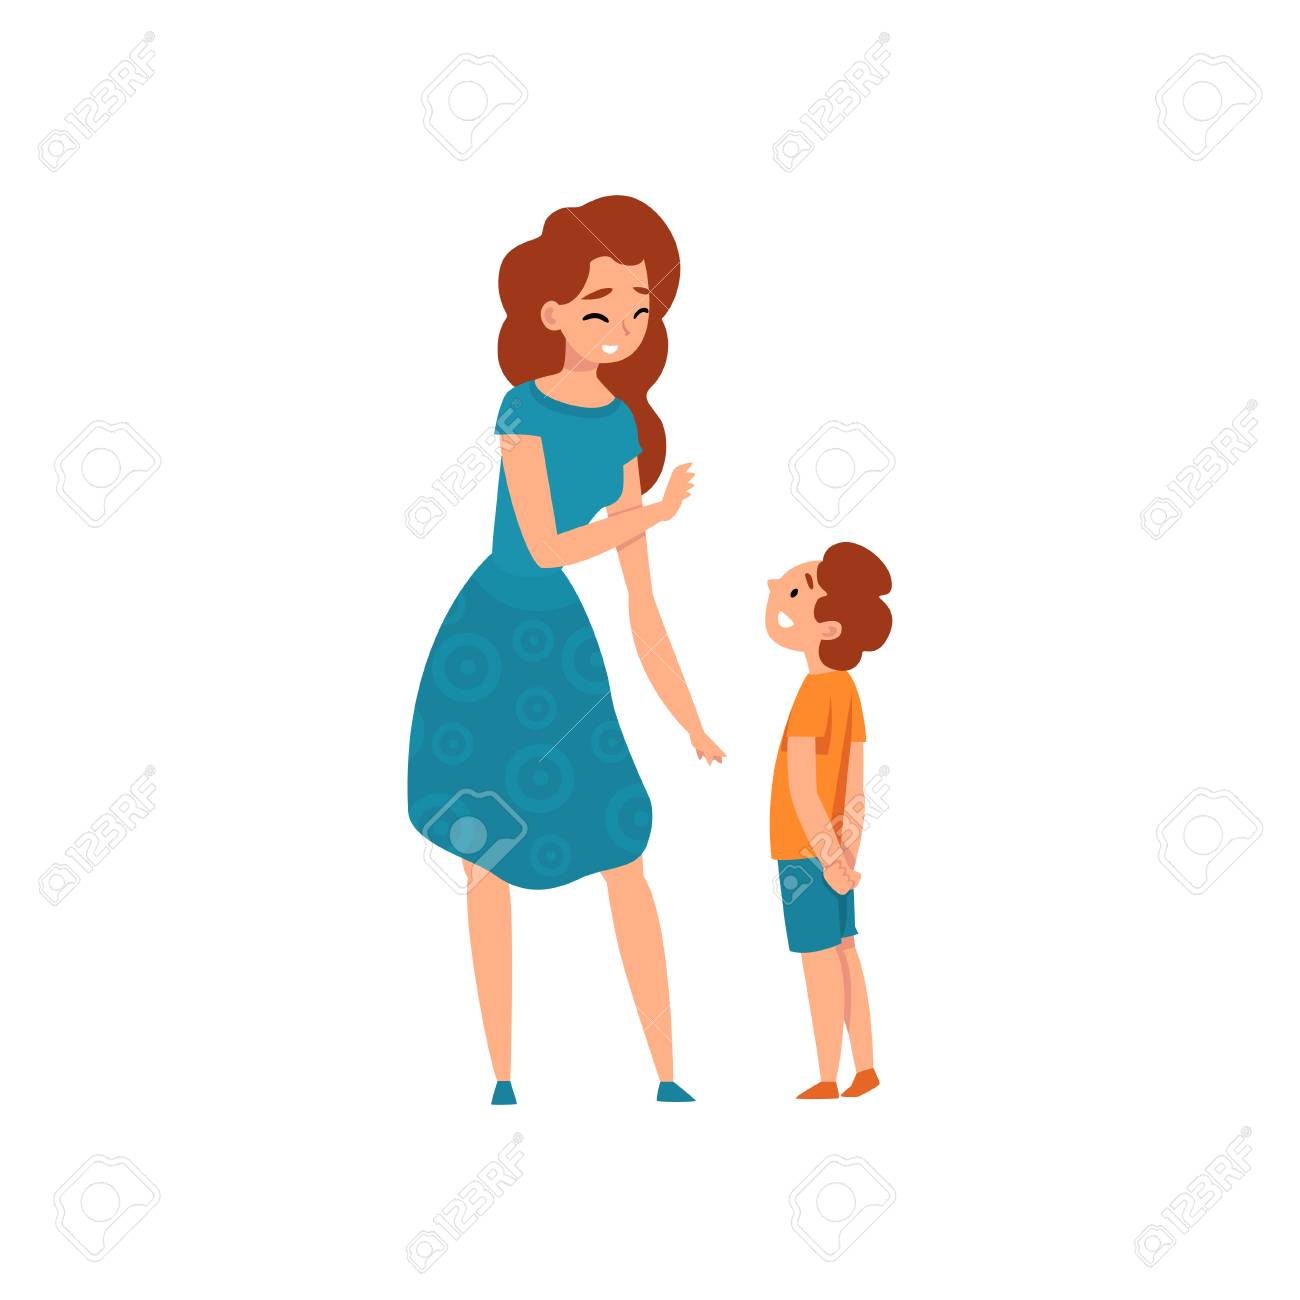 Mother talking with her son, mom having a good time with her kid, motherhood, parenting concept vector Illustration isolated on a white background. - 126132332